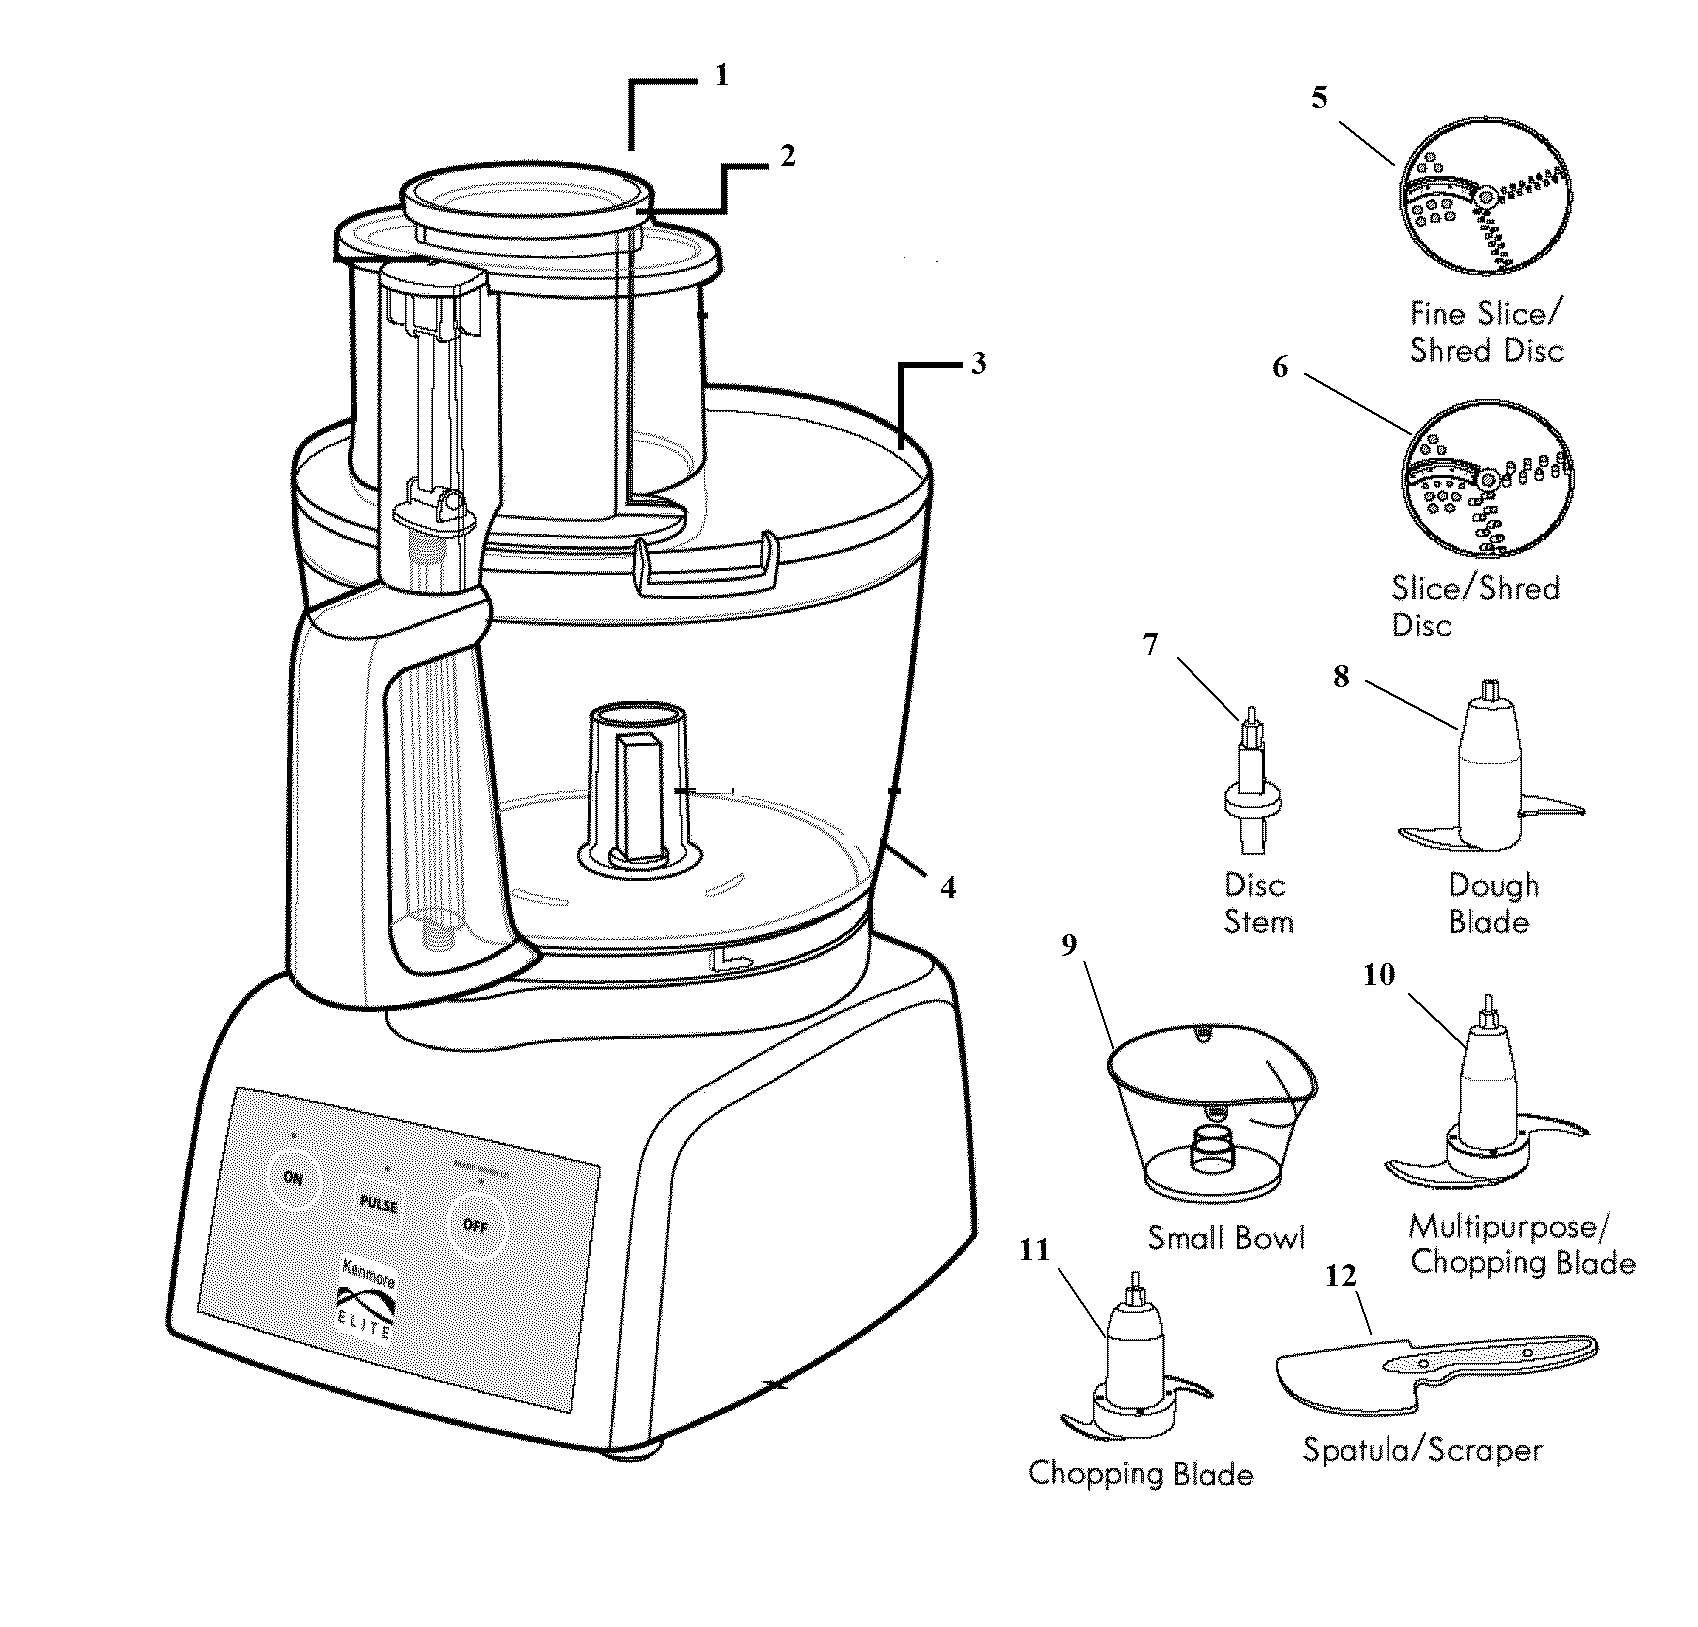 Kenmore-Elite model 10006912 food processor genuine parts